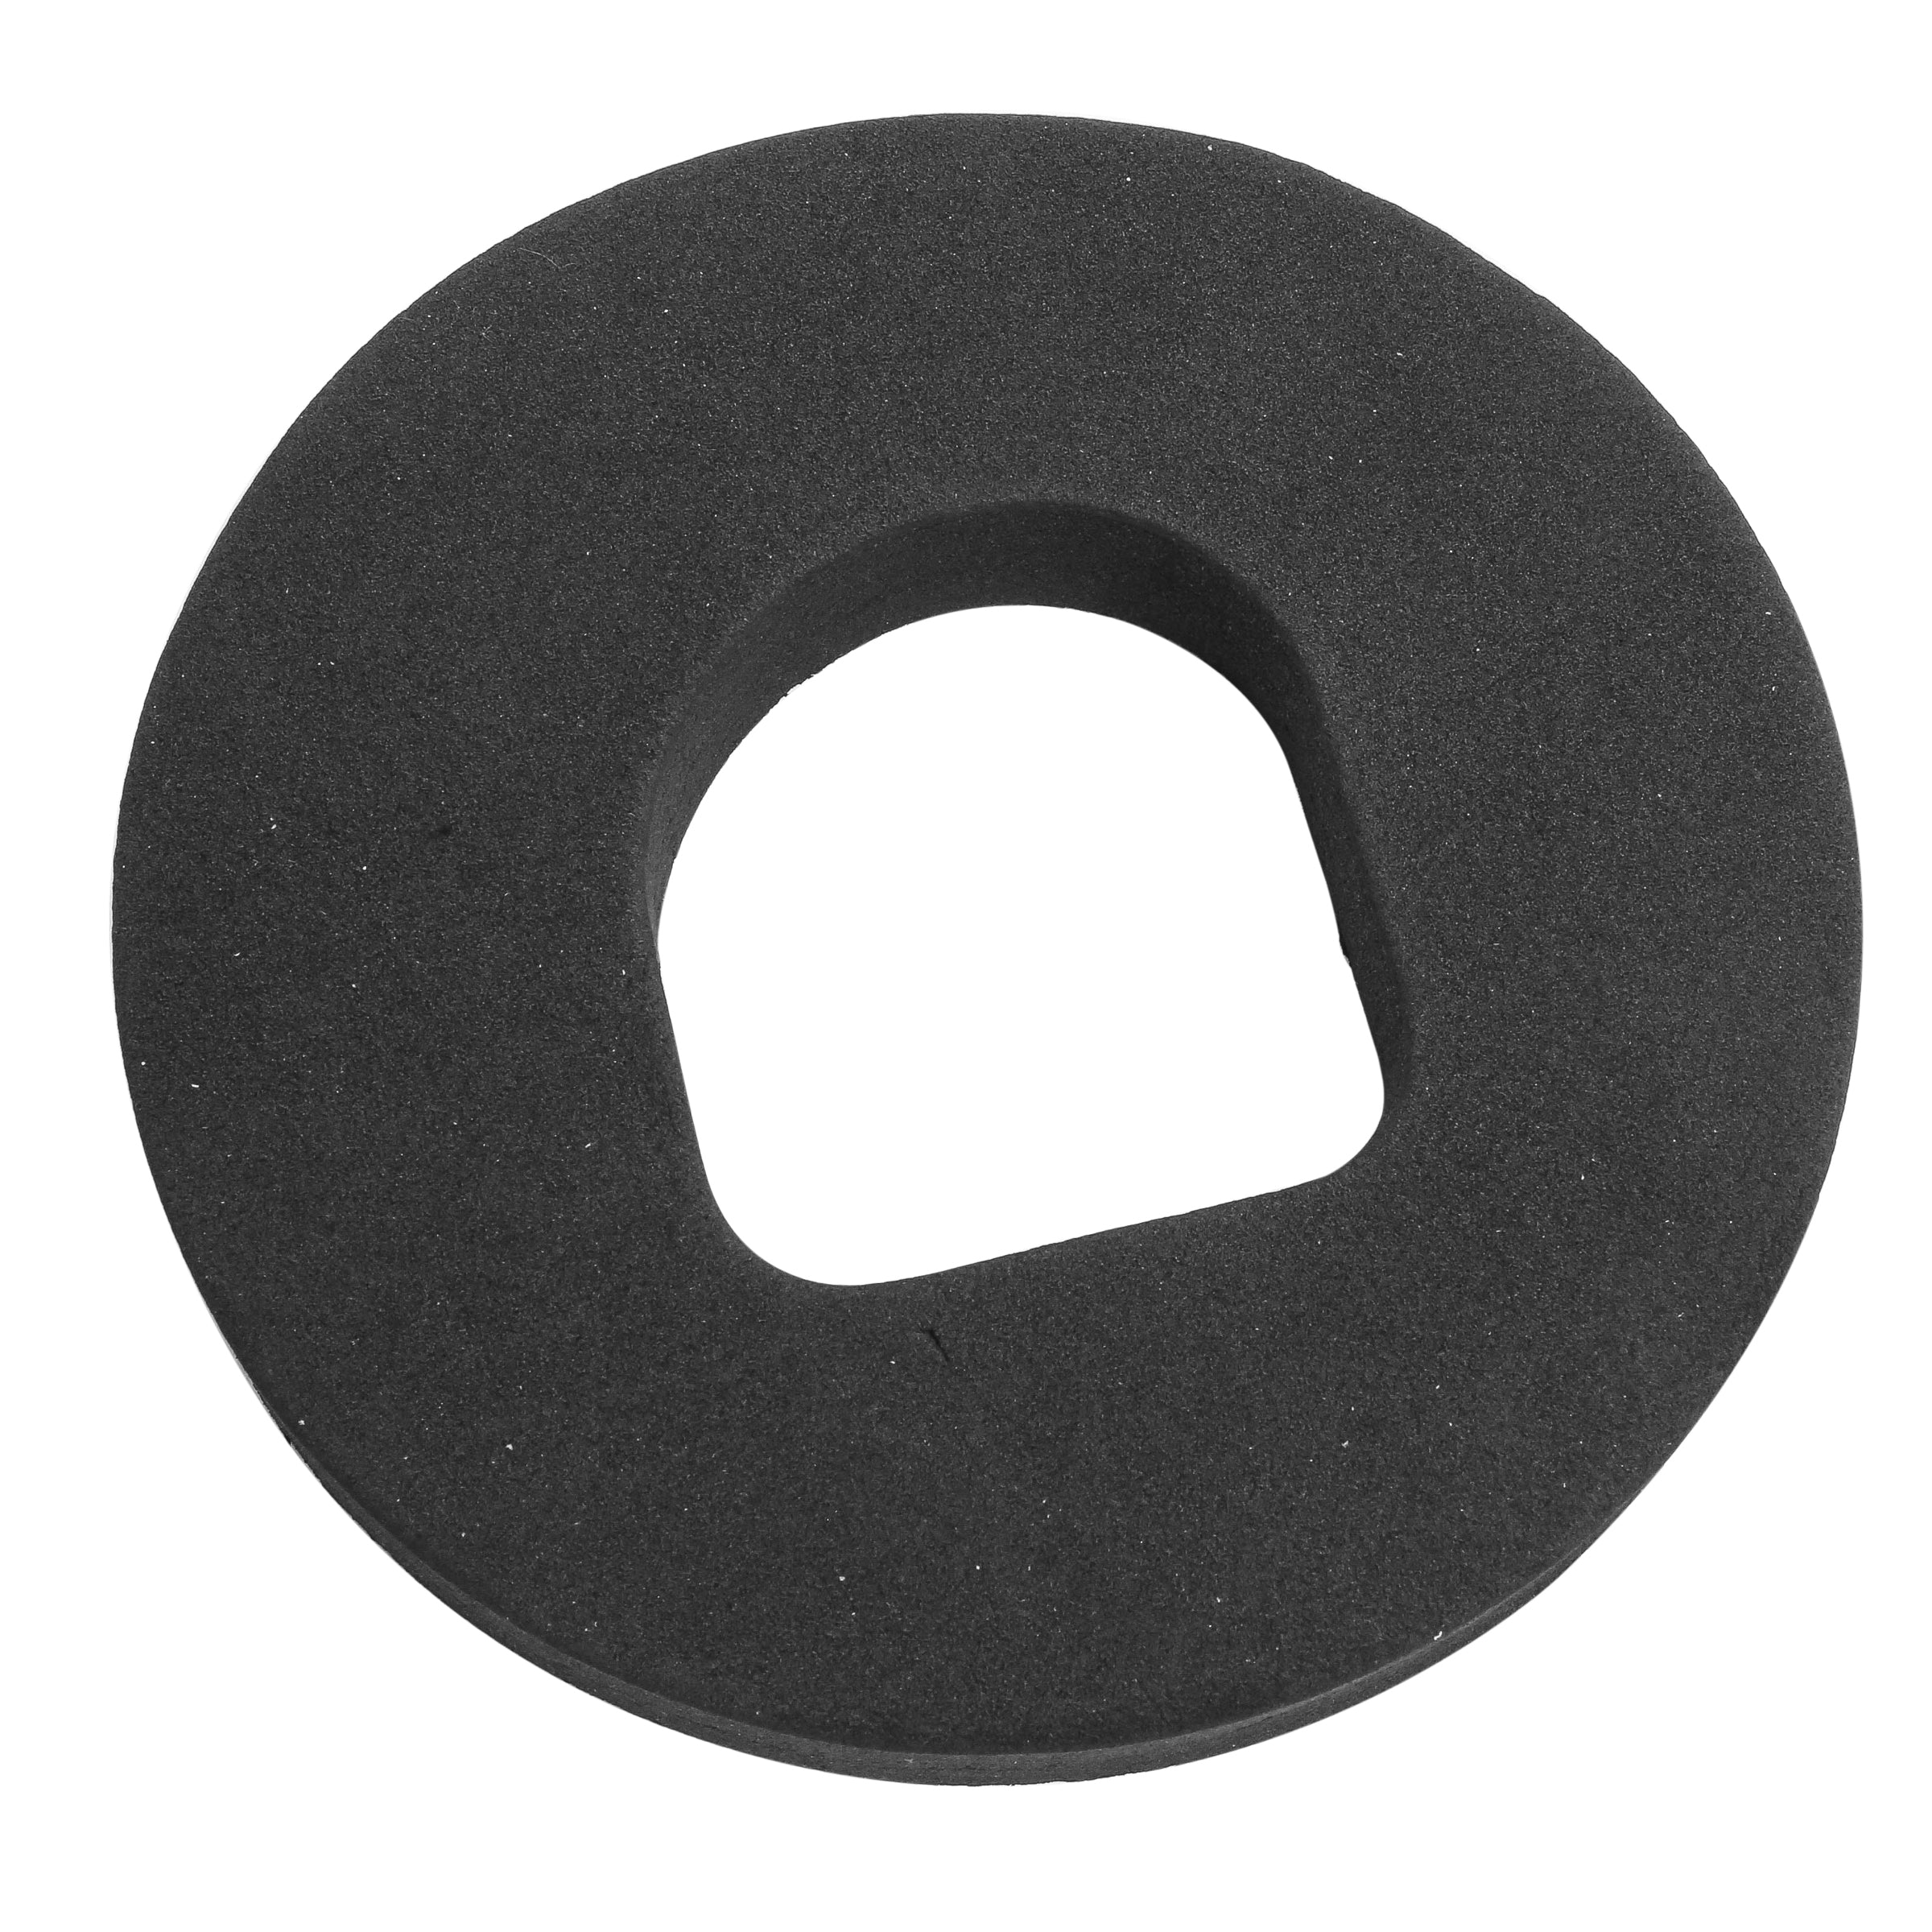 Top of Transmission to Floor Seal • 1937-41 Ford